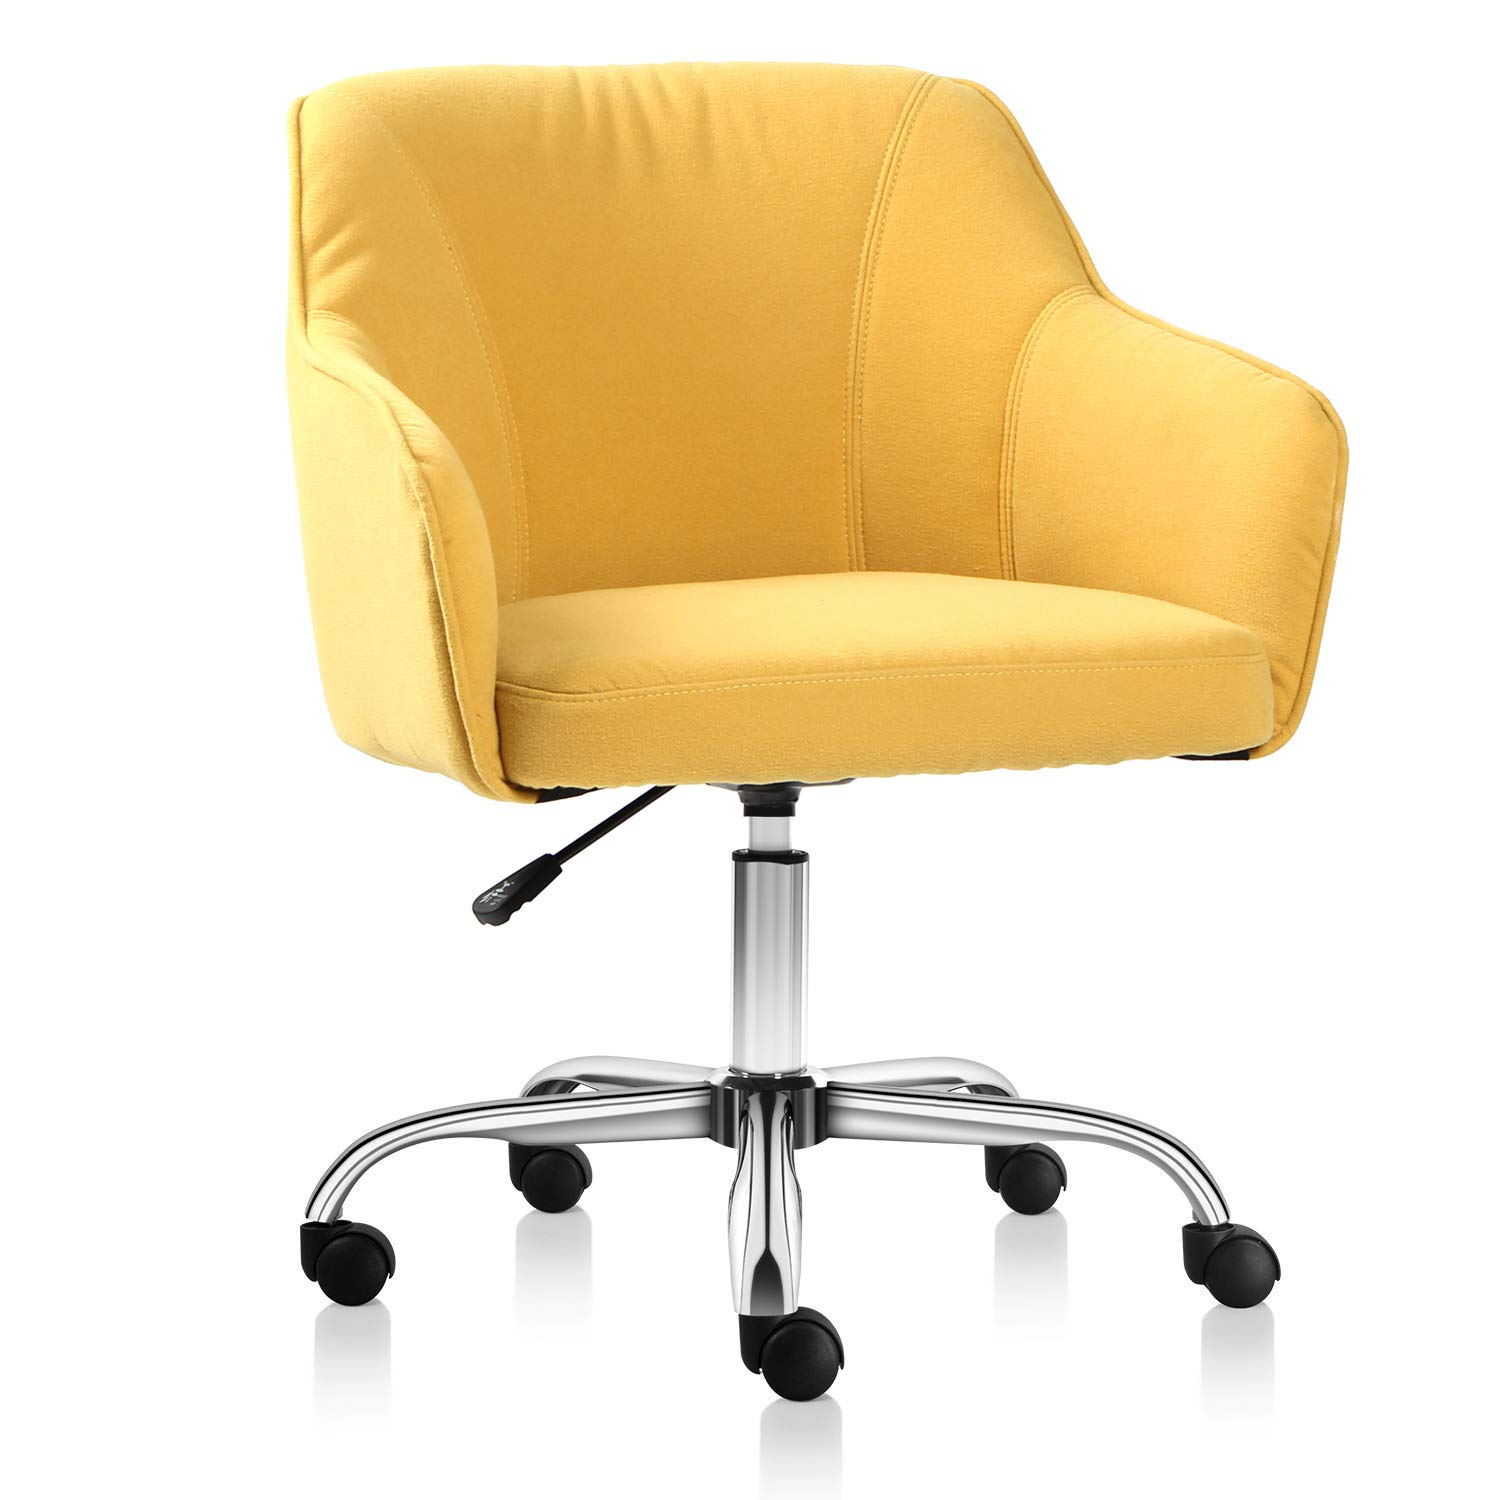 Rimiking Home Office Chair Upholstered Desk Chair with Arms for Conference Room or Office (Yellow) by Rimiking